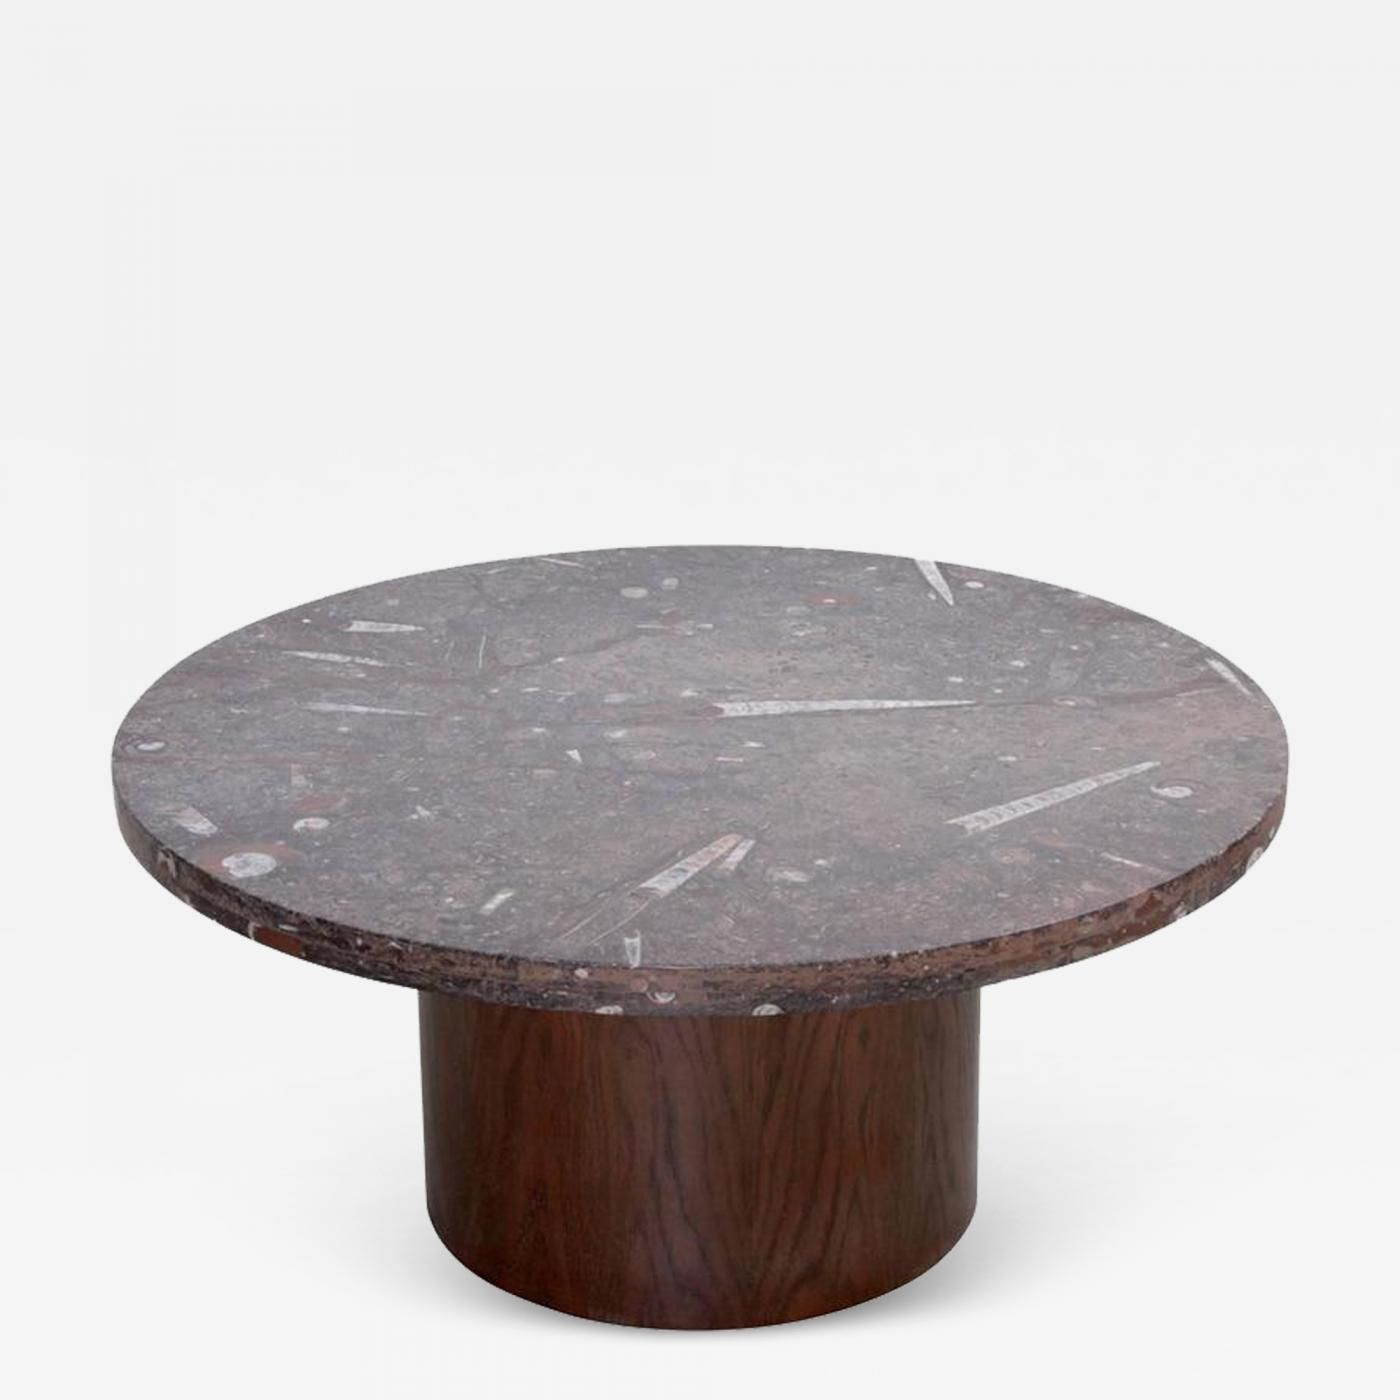 Heinz Lilienthal Heinz Lilienthal Coffee Table With Fossil Stone Top Coffee Table Stone Top Table [ 1400 x 1400 Pixel ]